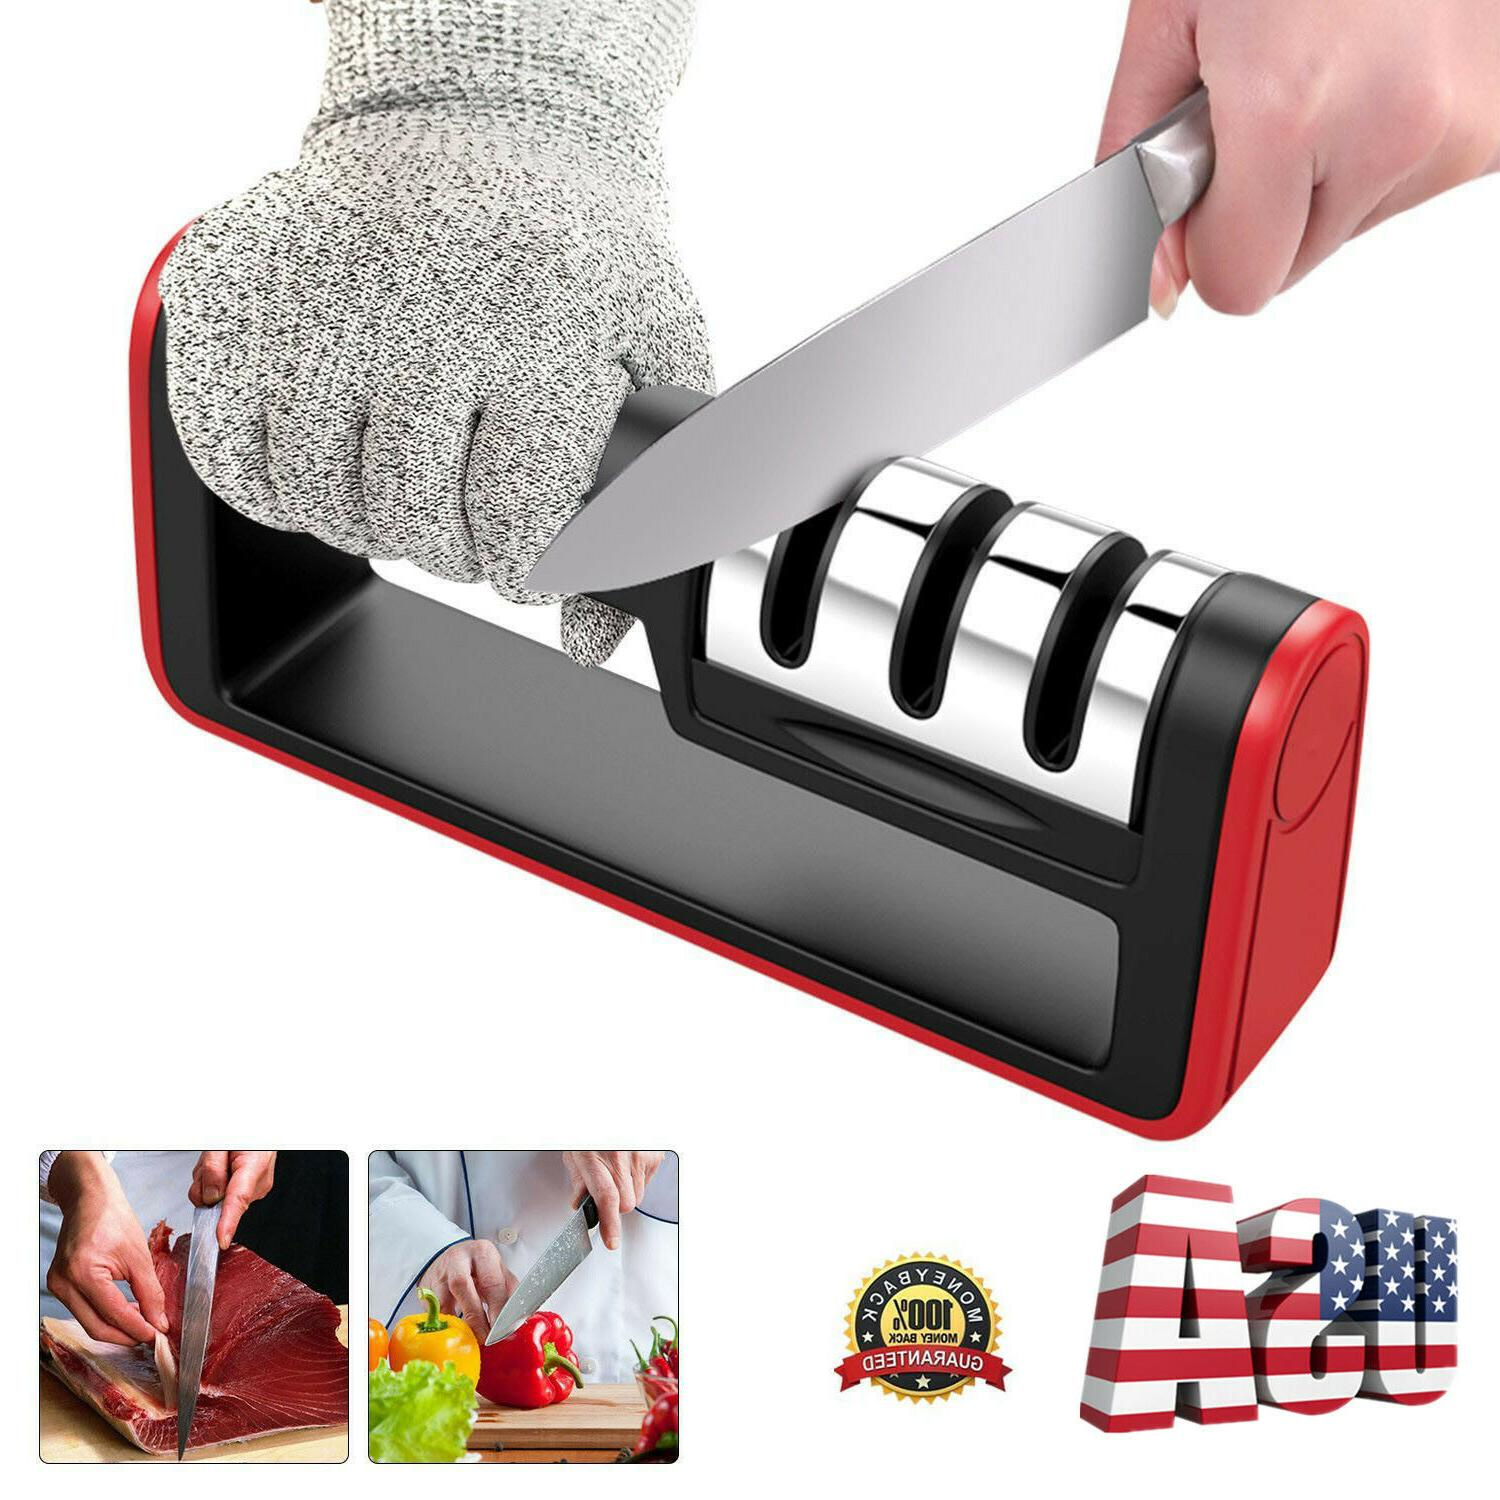 KNIFE SHARPENER Kitchen Knives Blade Sharpening Tool 3 Stage